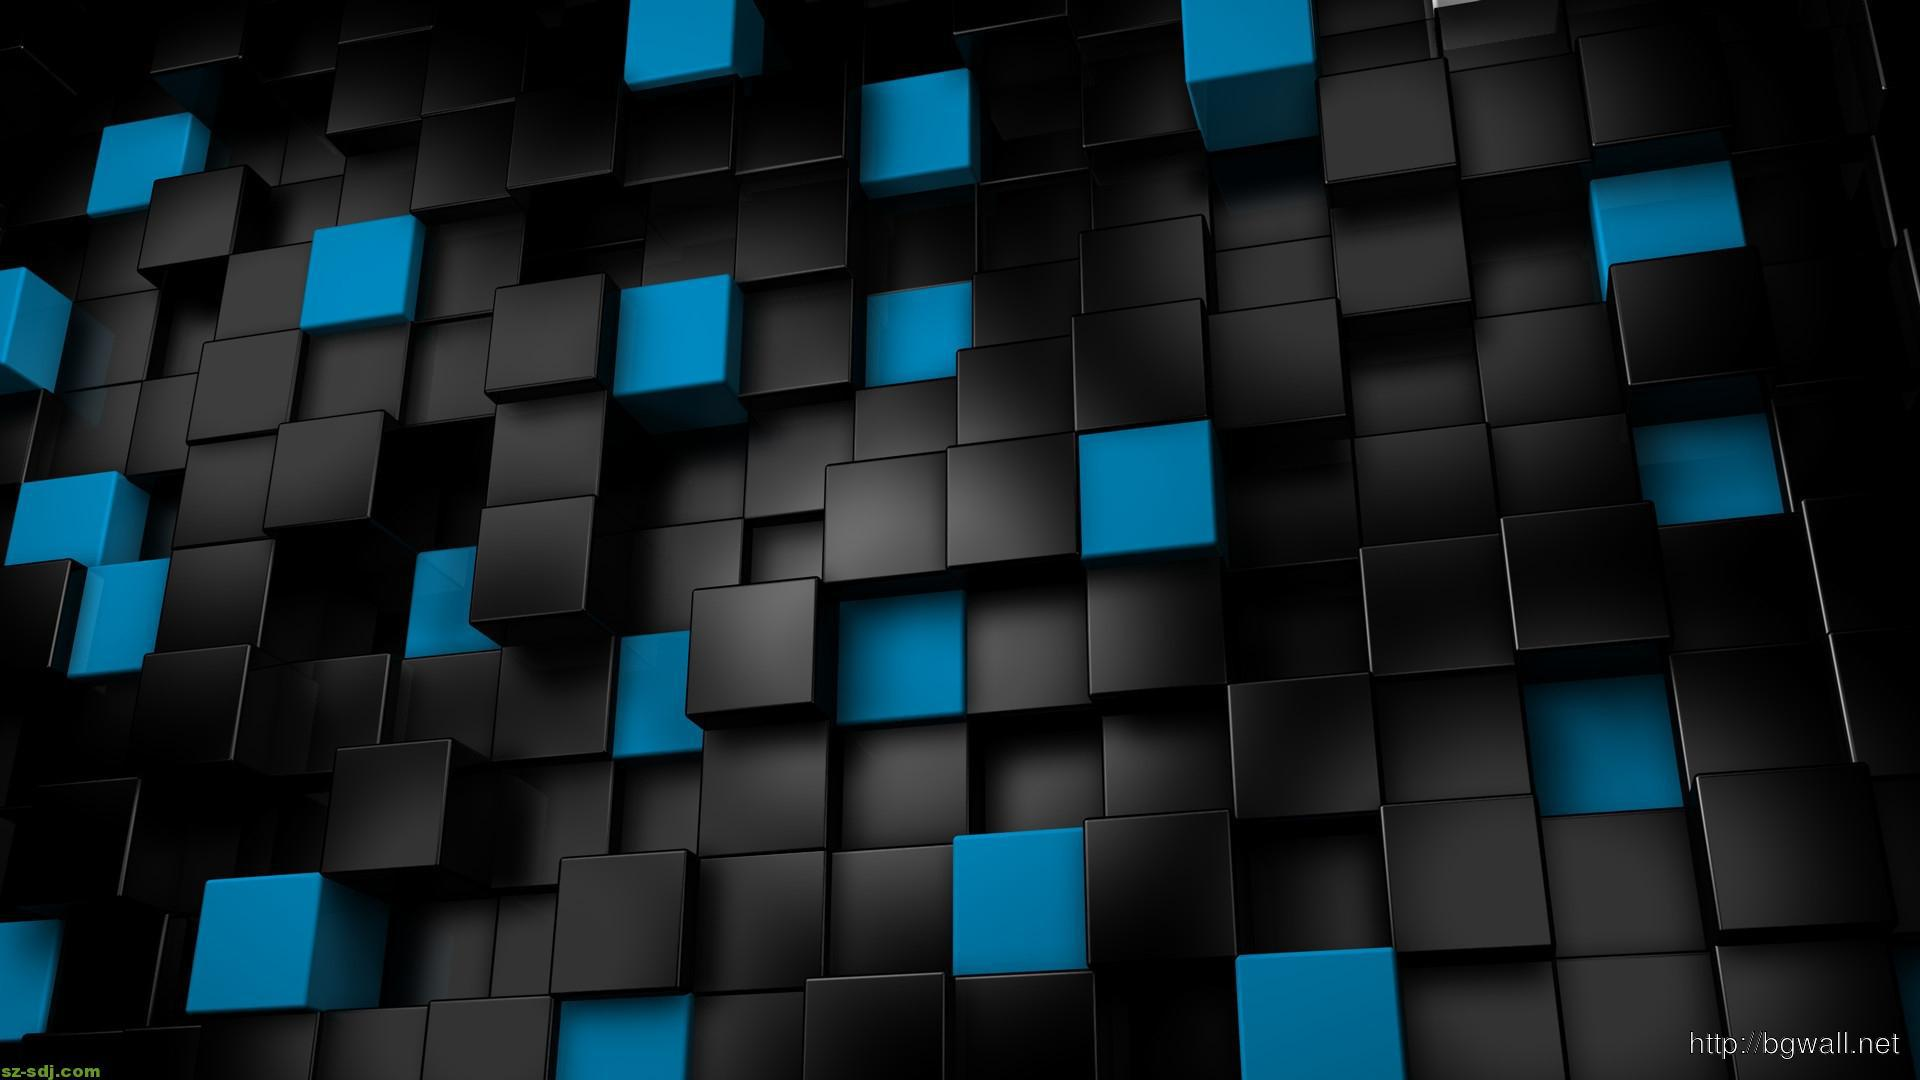 black-and-blue-box-wallpaper-hd